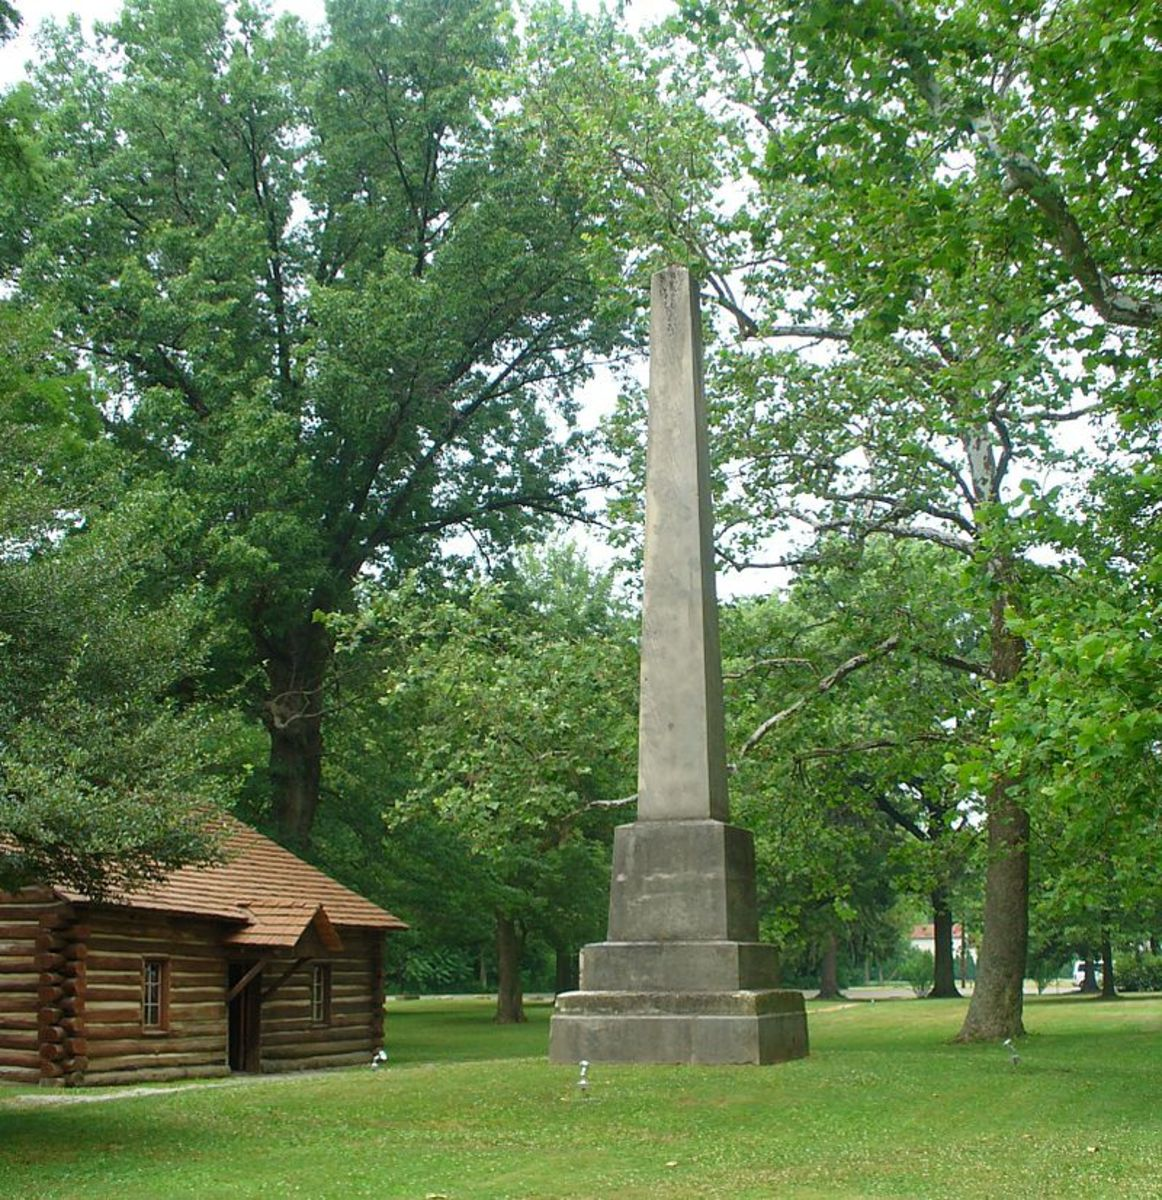 This 35-foot monument at the Gnadenhutten Massacre Site was erected to honor the 96 slain Moravian Delaware Indians.